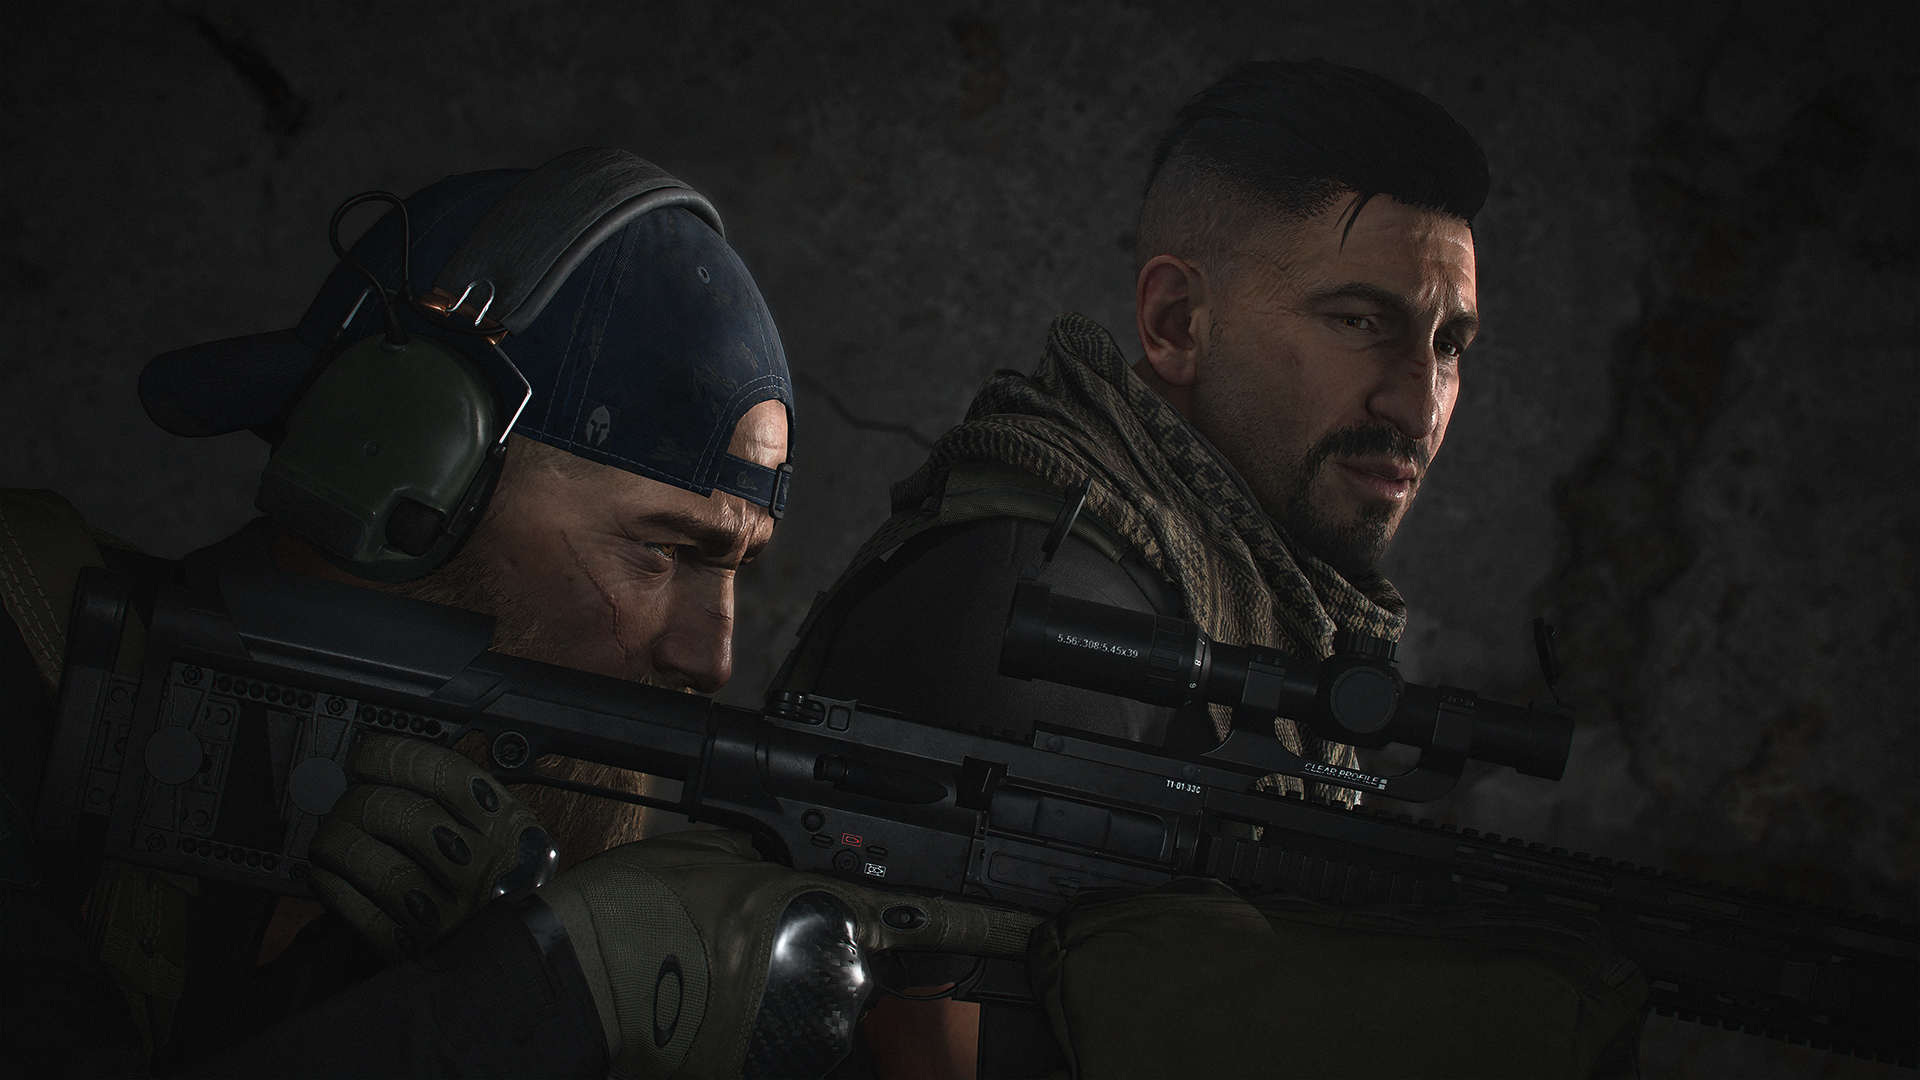 Two grizzled Ghost Recon operators side by side looking out at what is undoubtedly a grim scene of danger